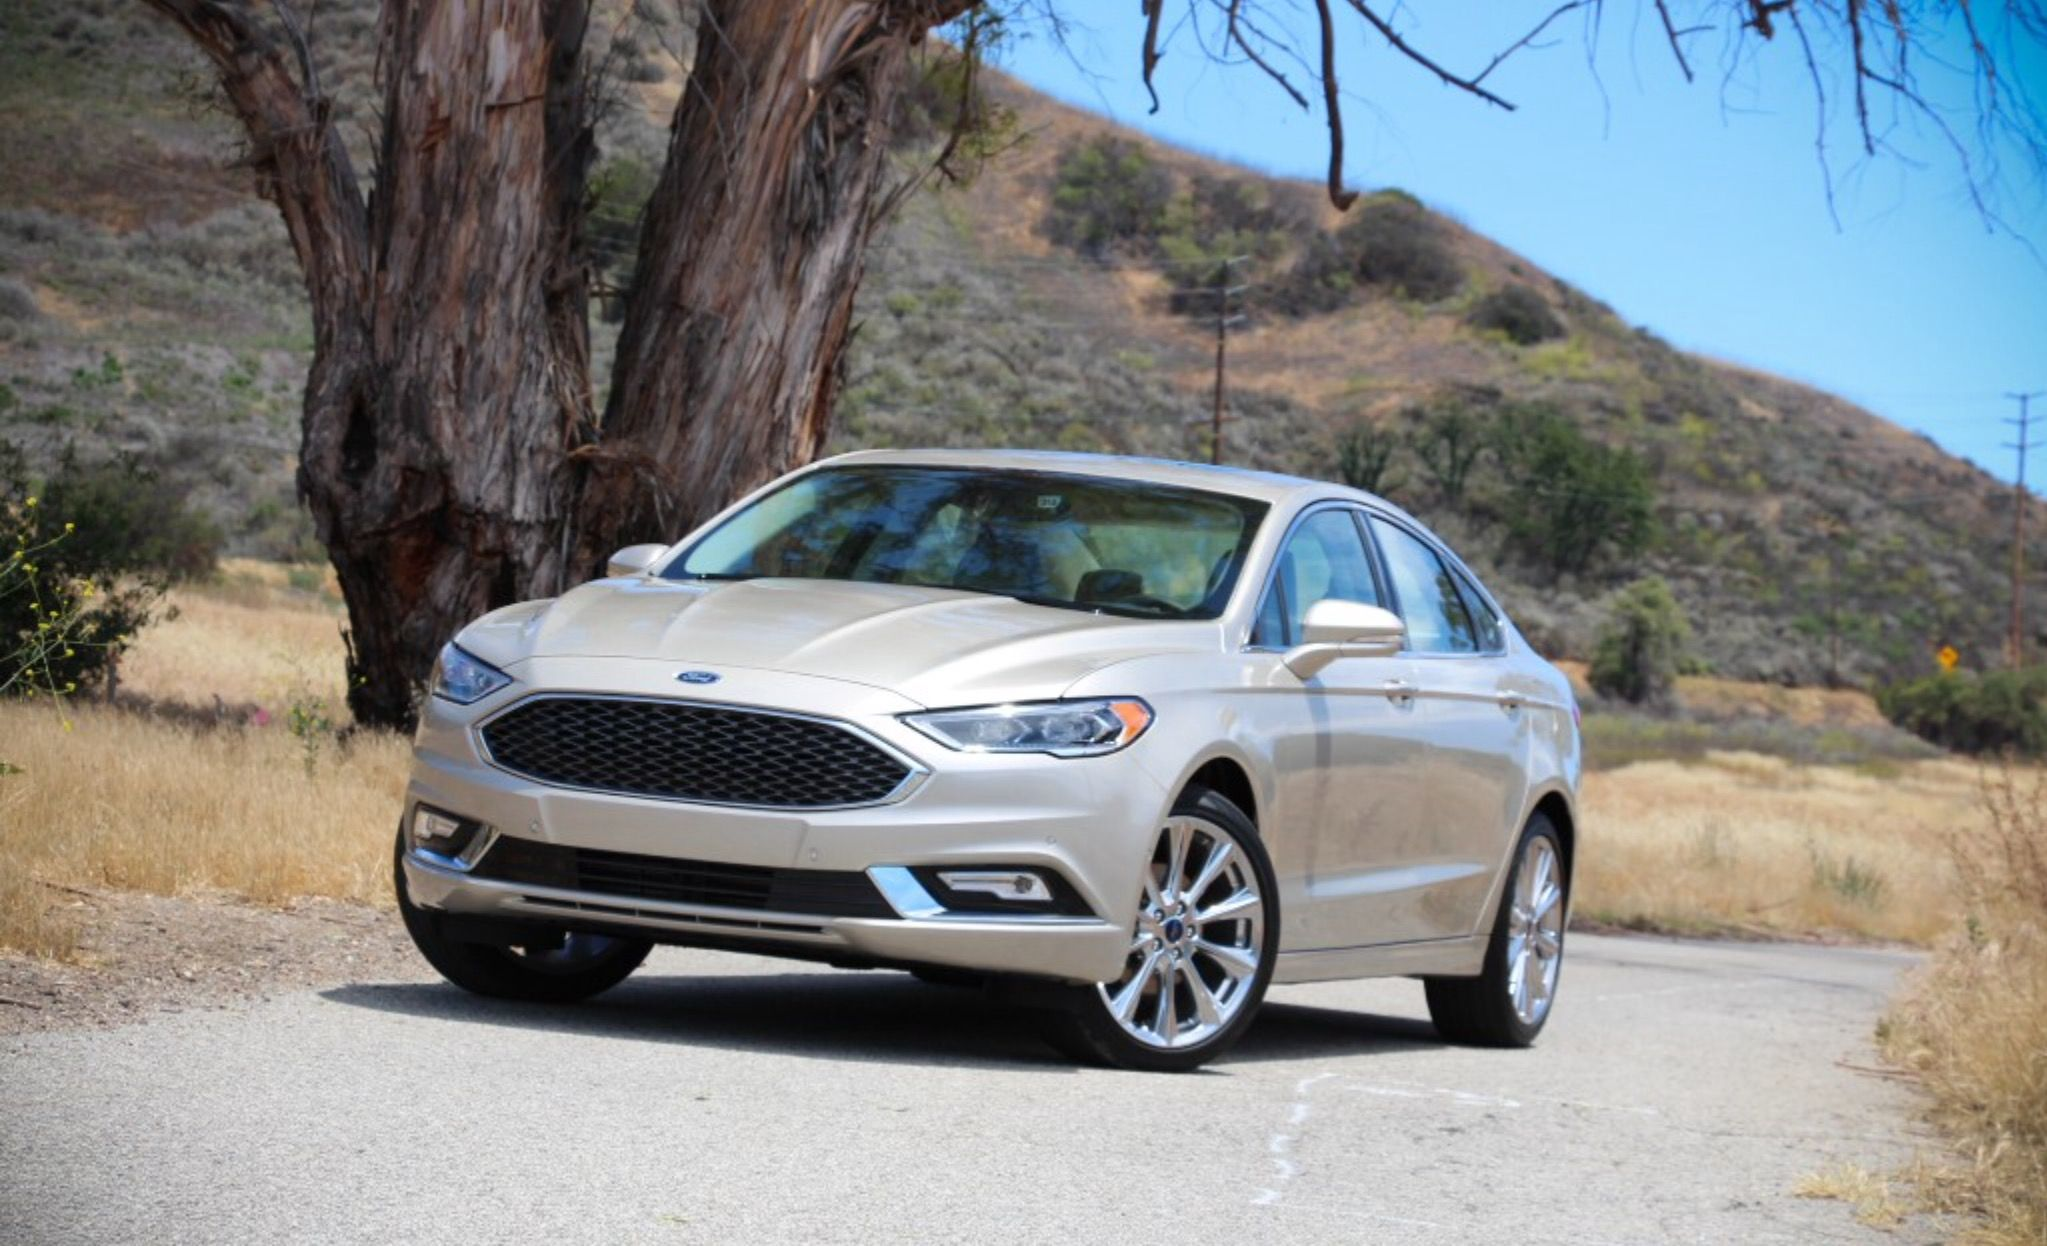 assistance s hybrid review ford car reviews fusion driver test and photo platinum safety original